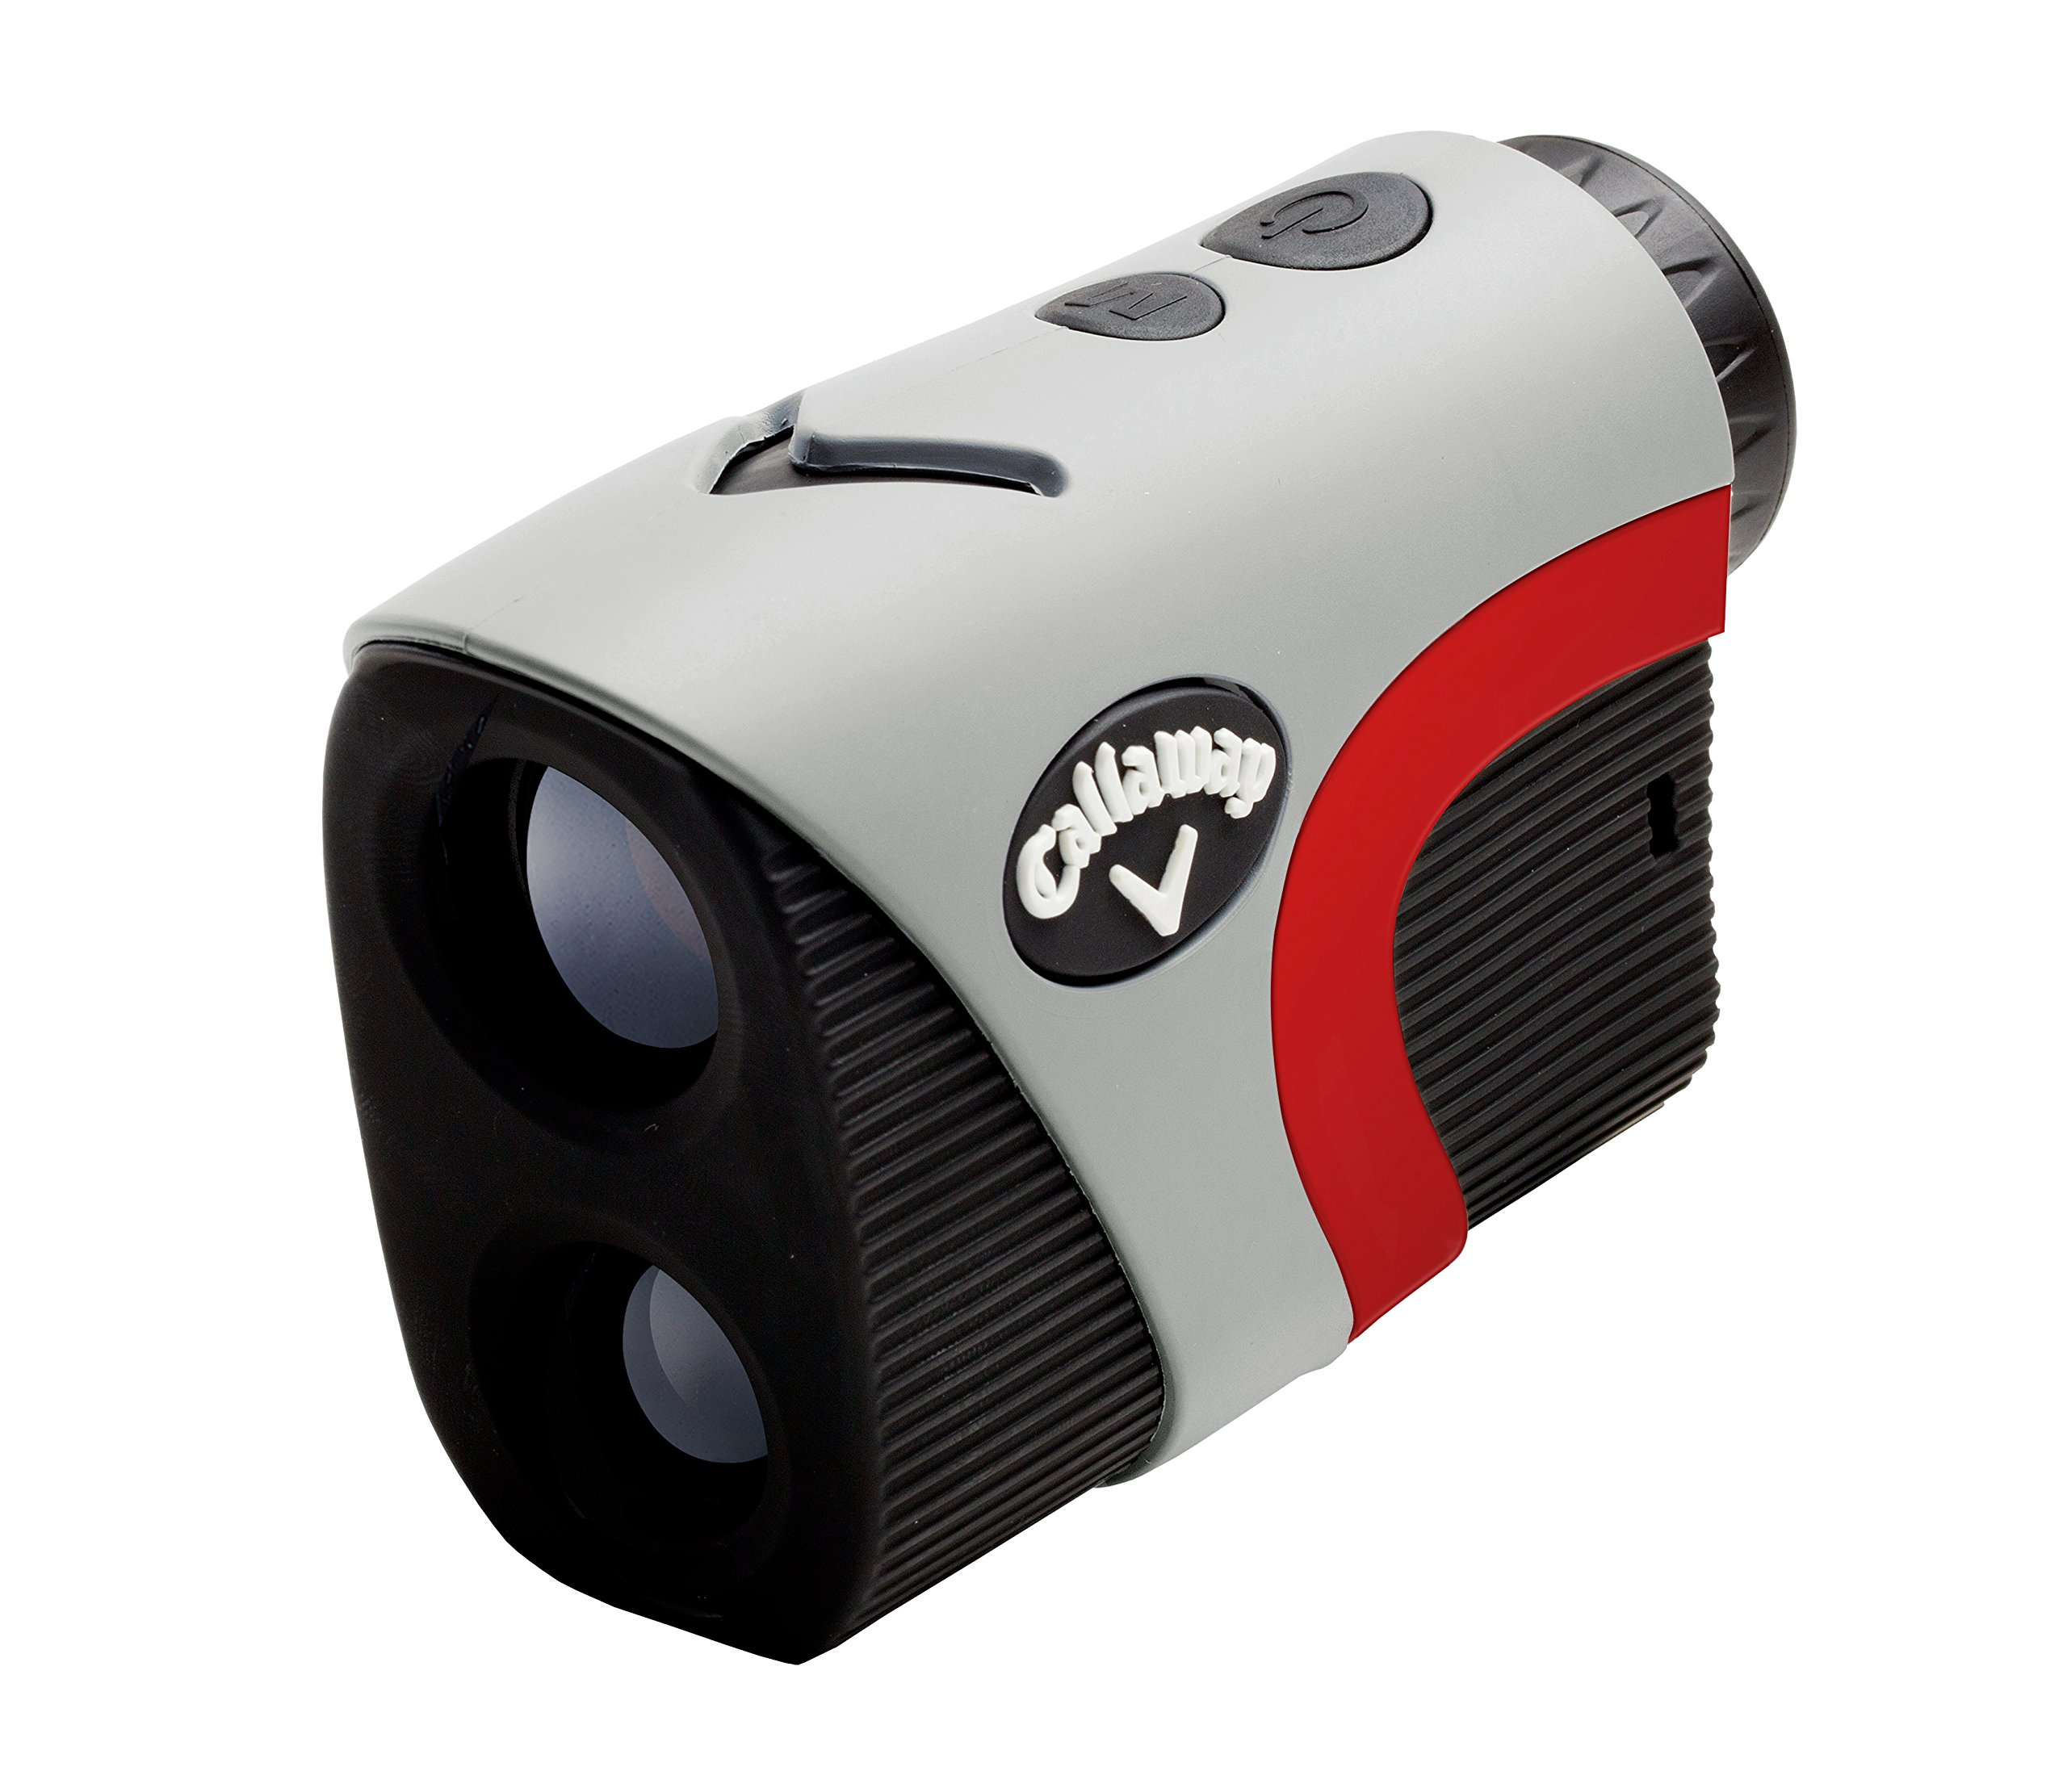 Callaway 300 Pro Golf Laser Rangefinder with Slope Measurement by Callaway